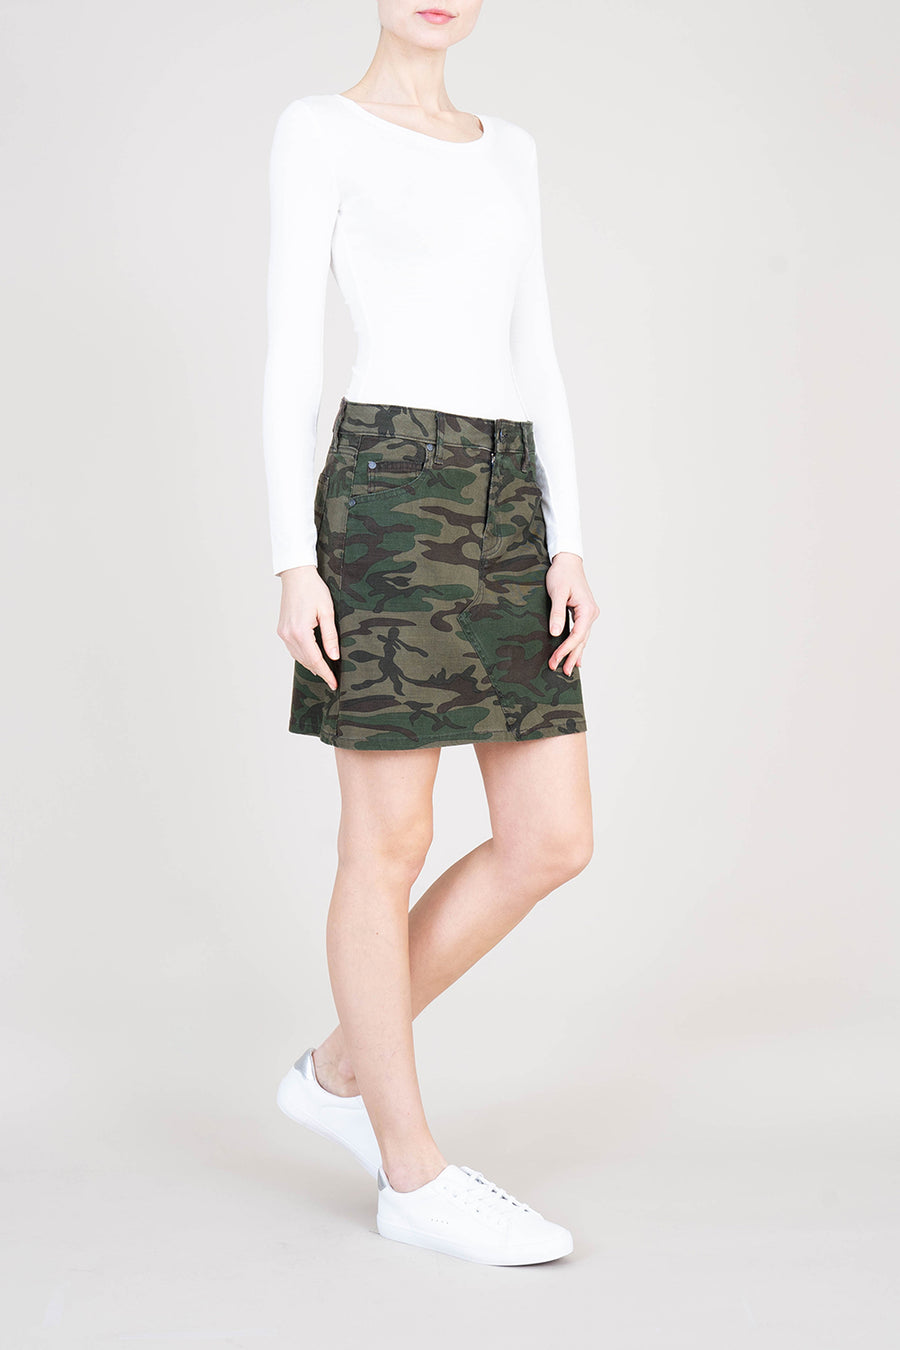 Darcy Camo Skirt - level99jeans